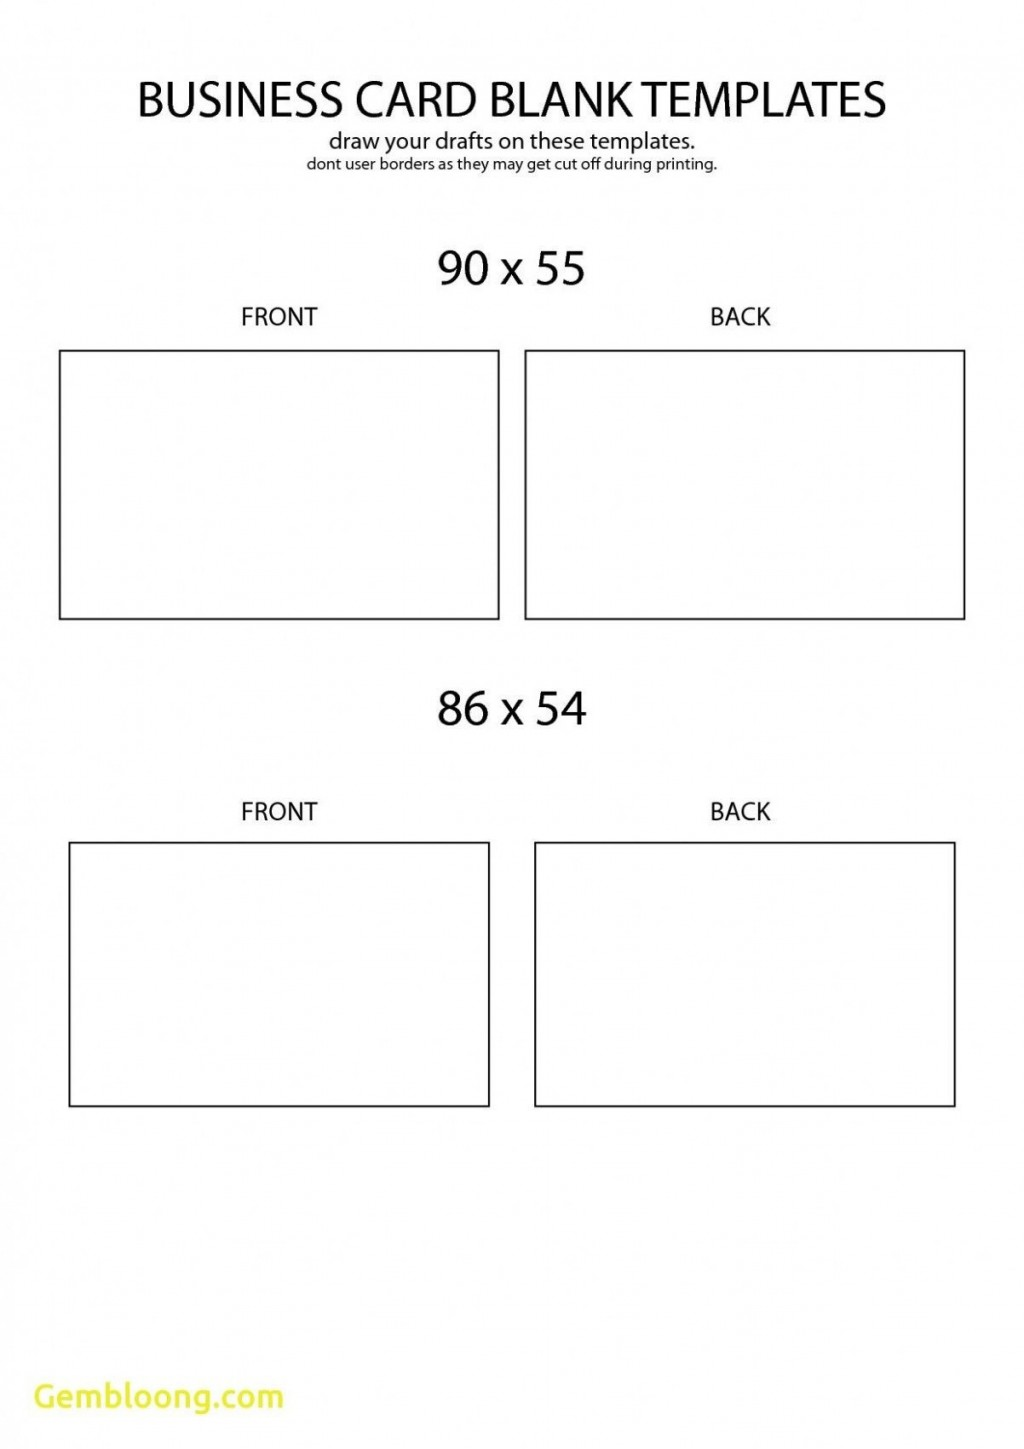 009 Dreaded Busines Card Blank Template Image  Download FreeLarge